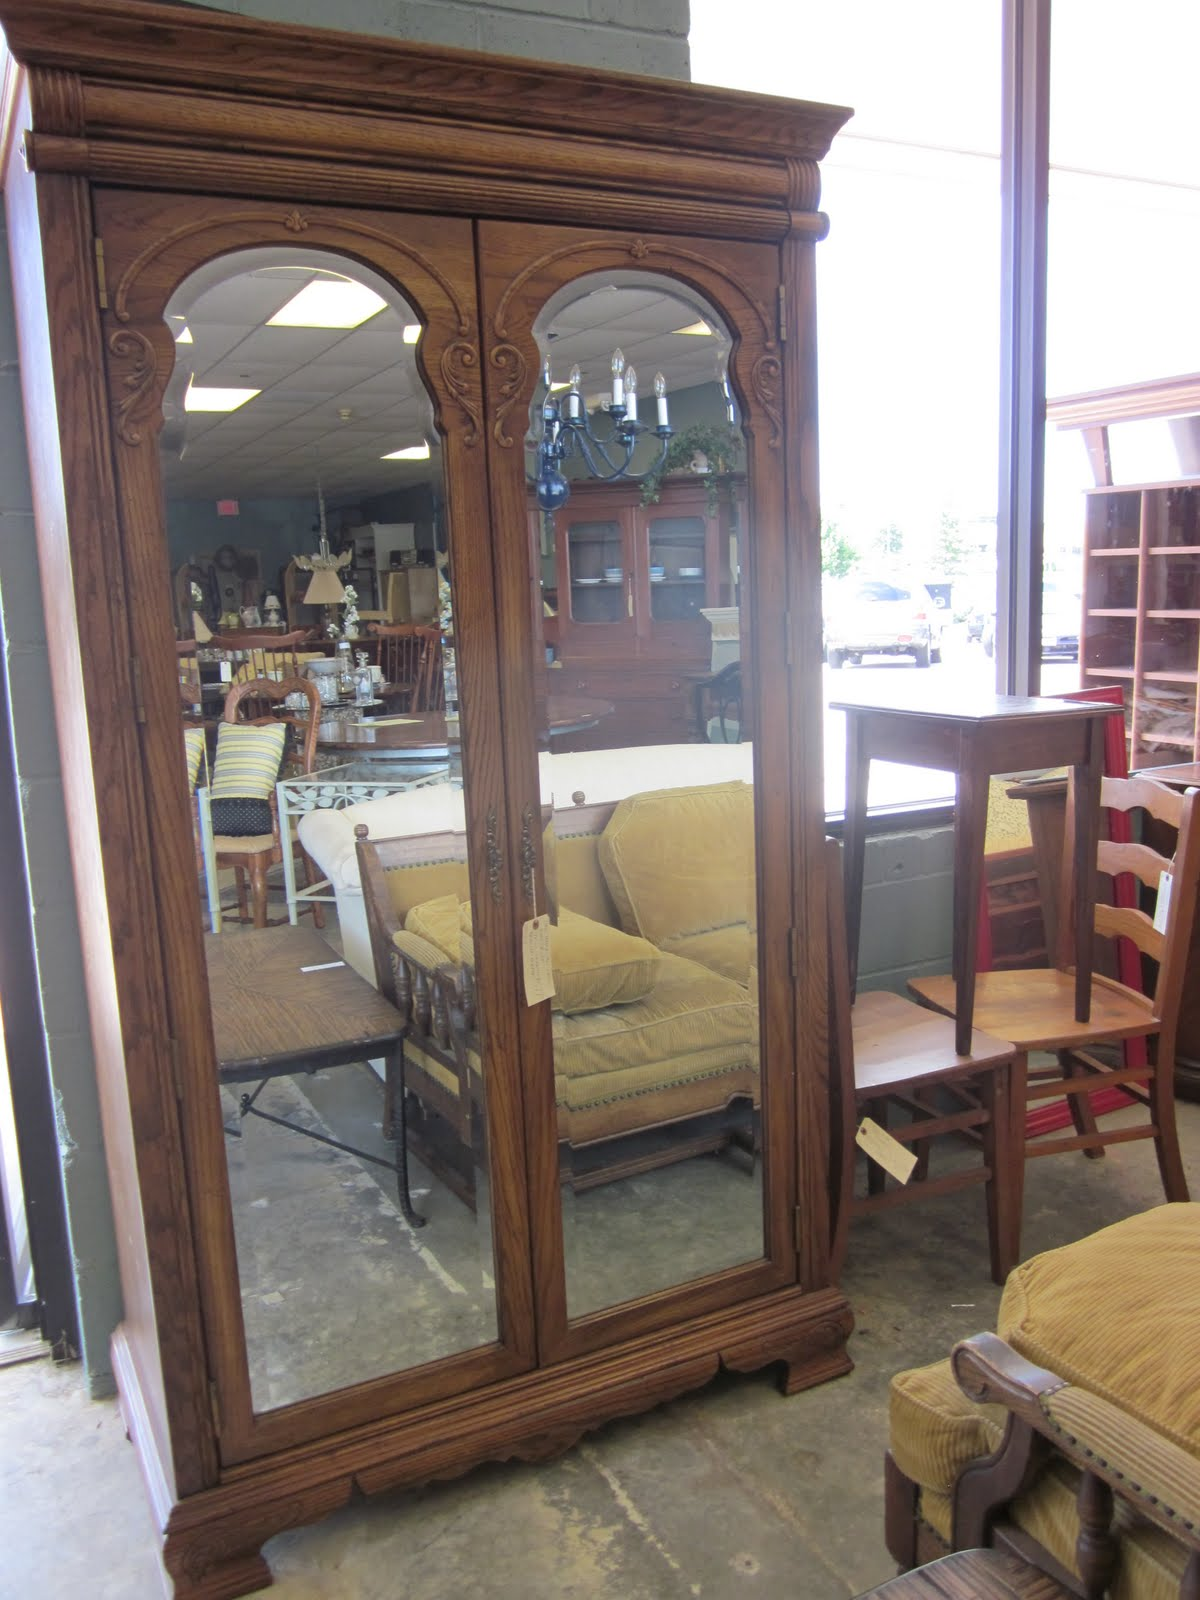 Reused Consignment Furniture Reused Furniture Live Auction Wednesday July 28 6 30 Pm